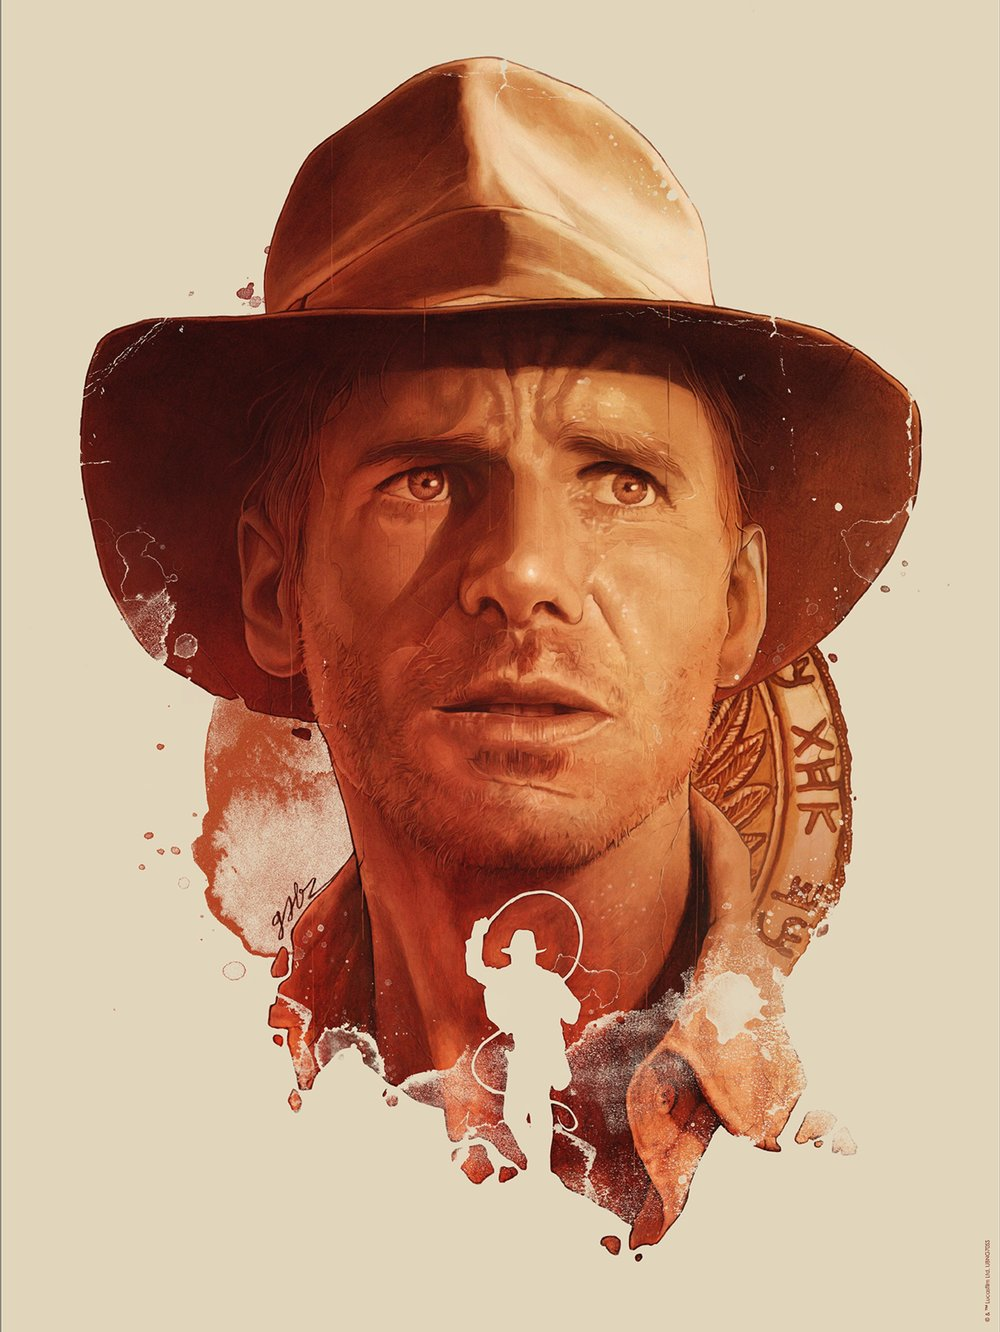 """Gabz """"Indiana Jones"""" giclee, 18 x 24 inches, numbered edition of 200, co-released with Acme Archives, available for $45"""